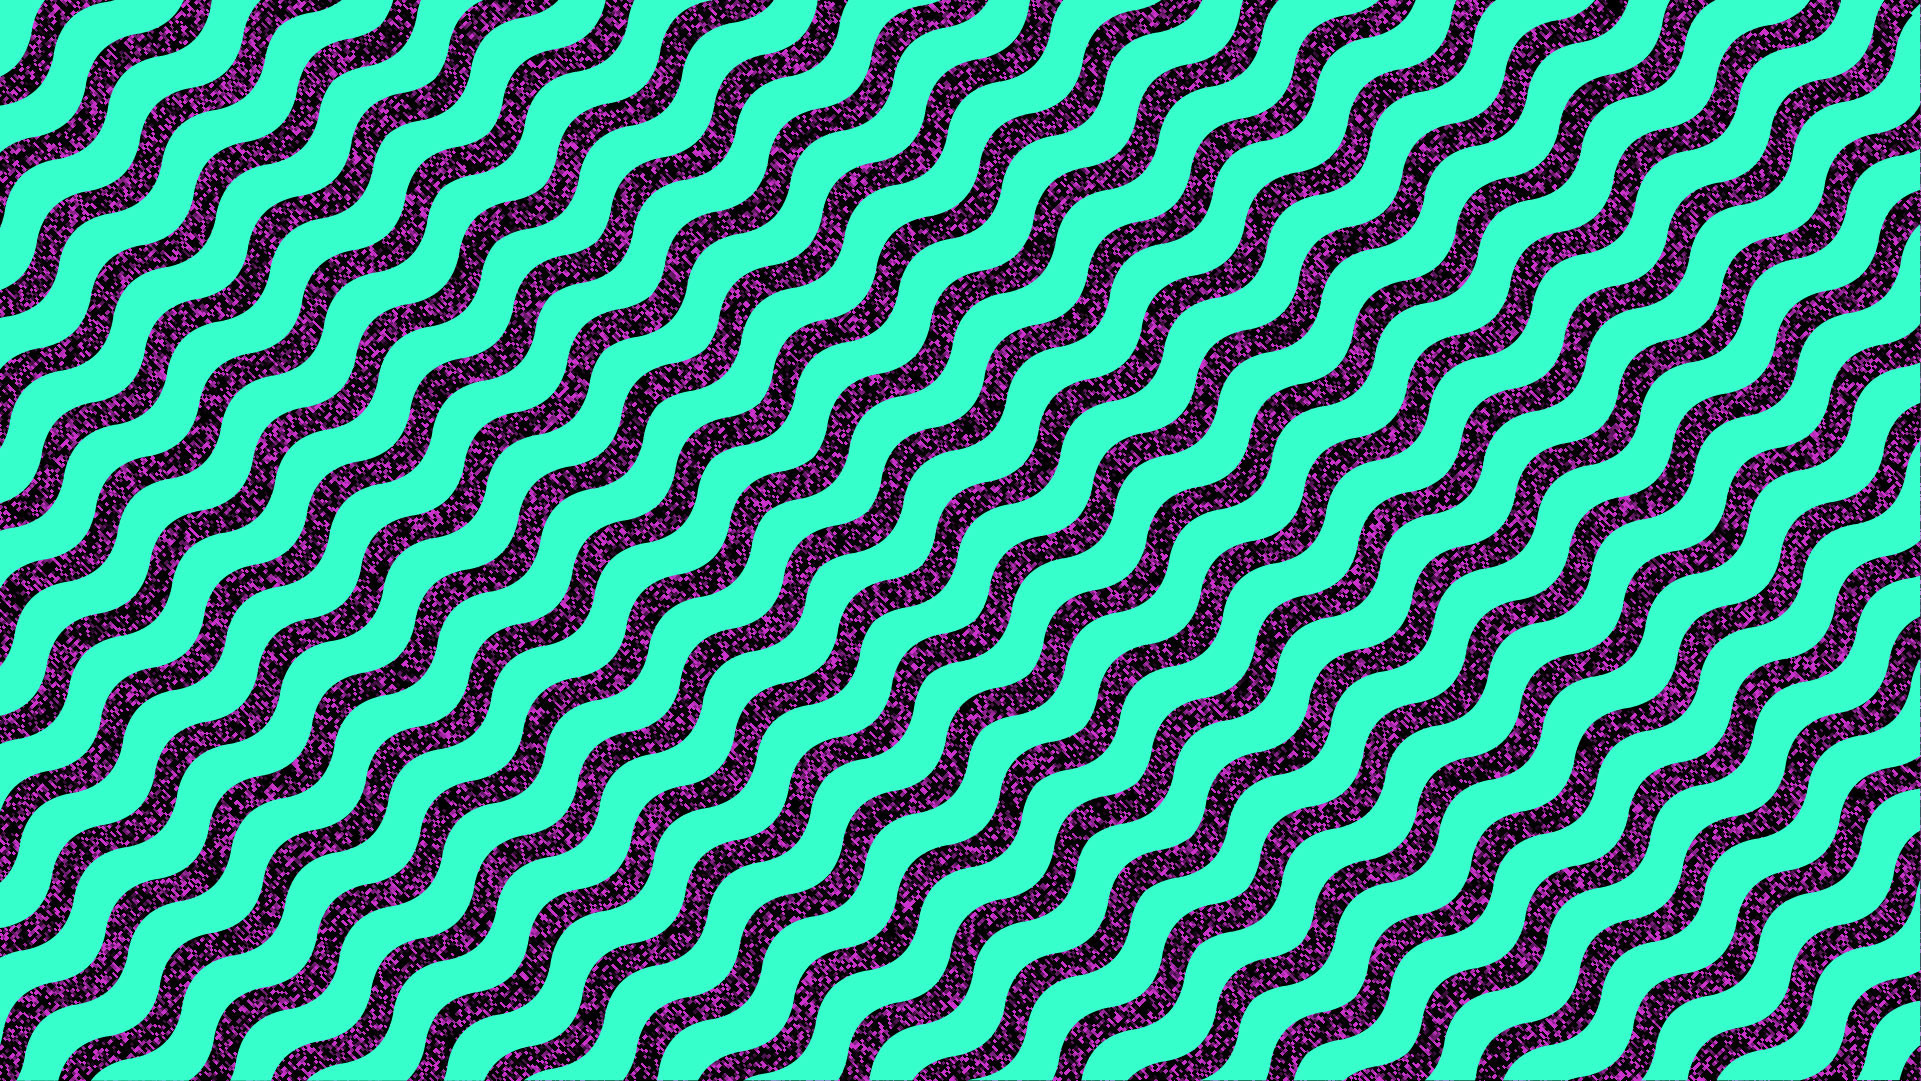 90s Wallpaper Patterns Summer of the 90s #1